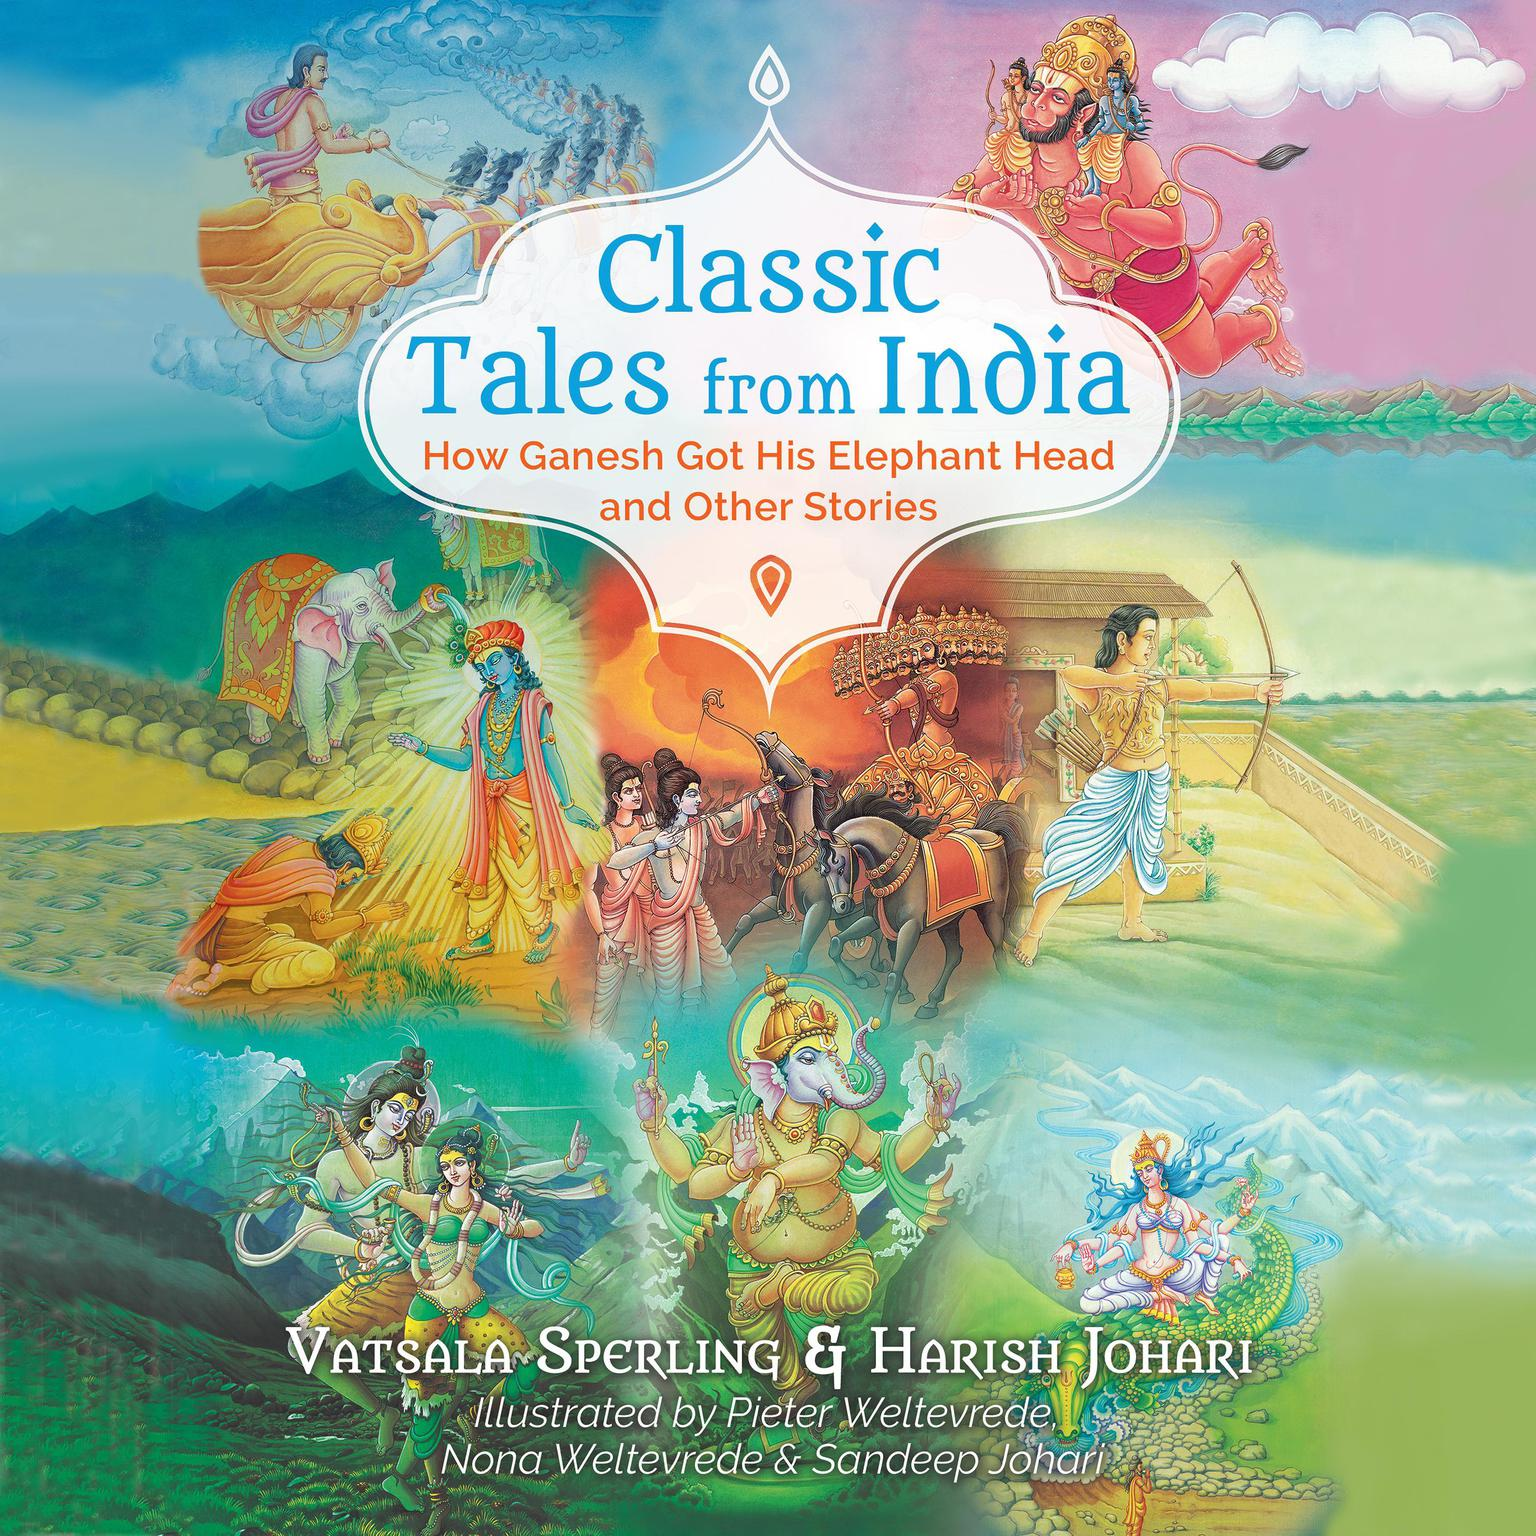 Classic Tales from India: How Ganesh Got His Elephant Head and Other Stories Audiobook, by Vatsala Sperling